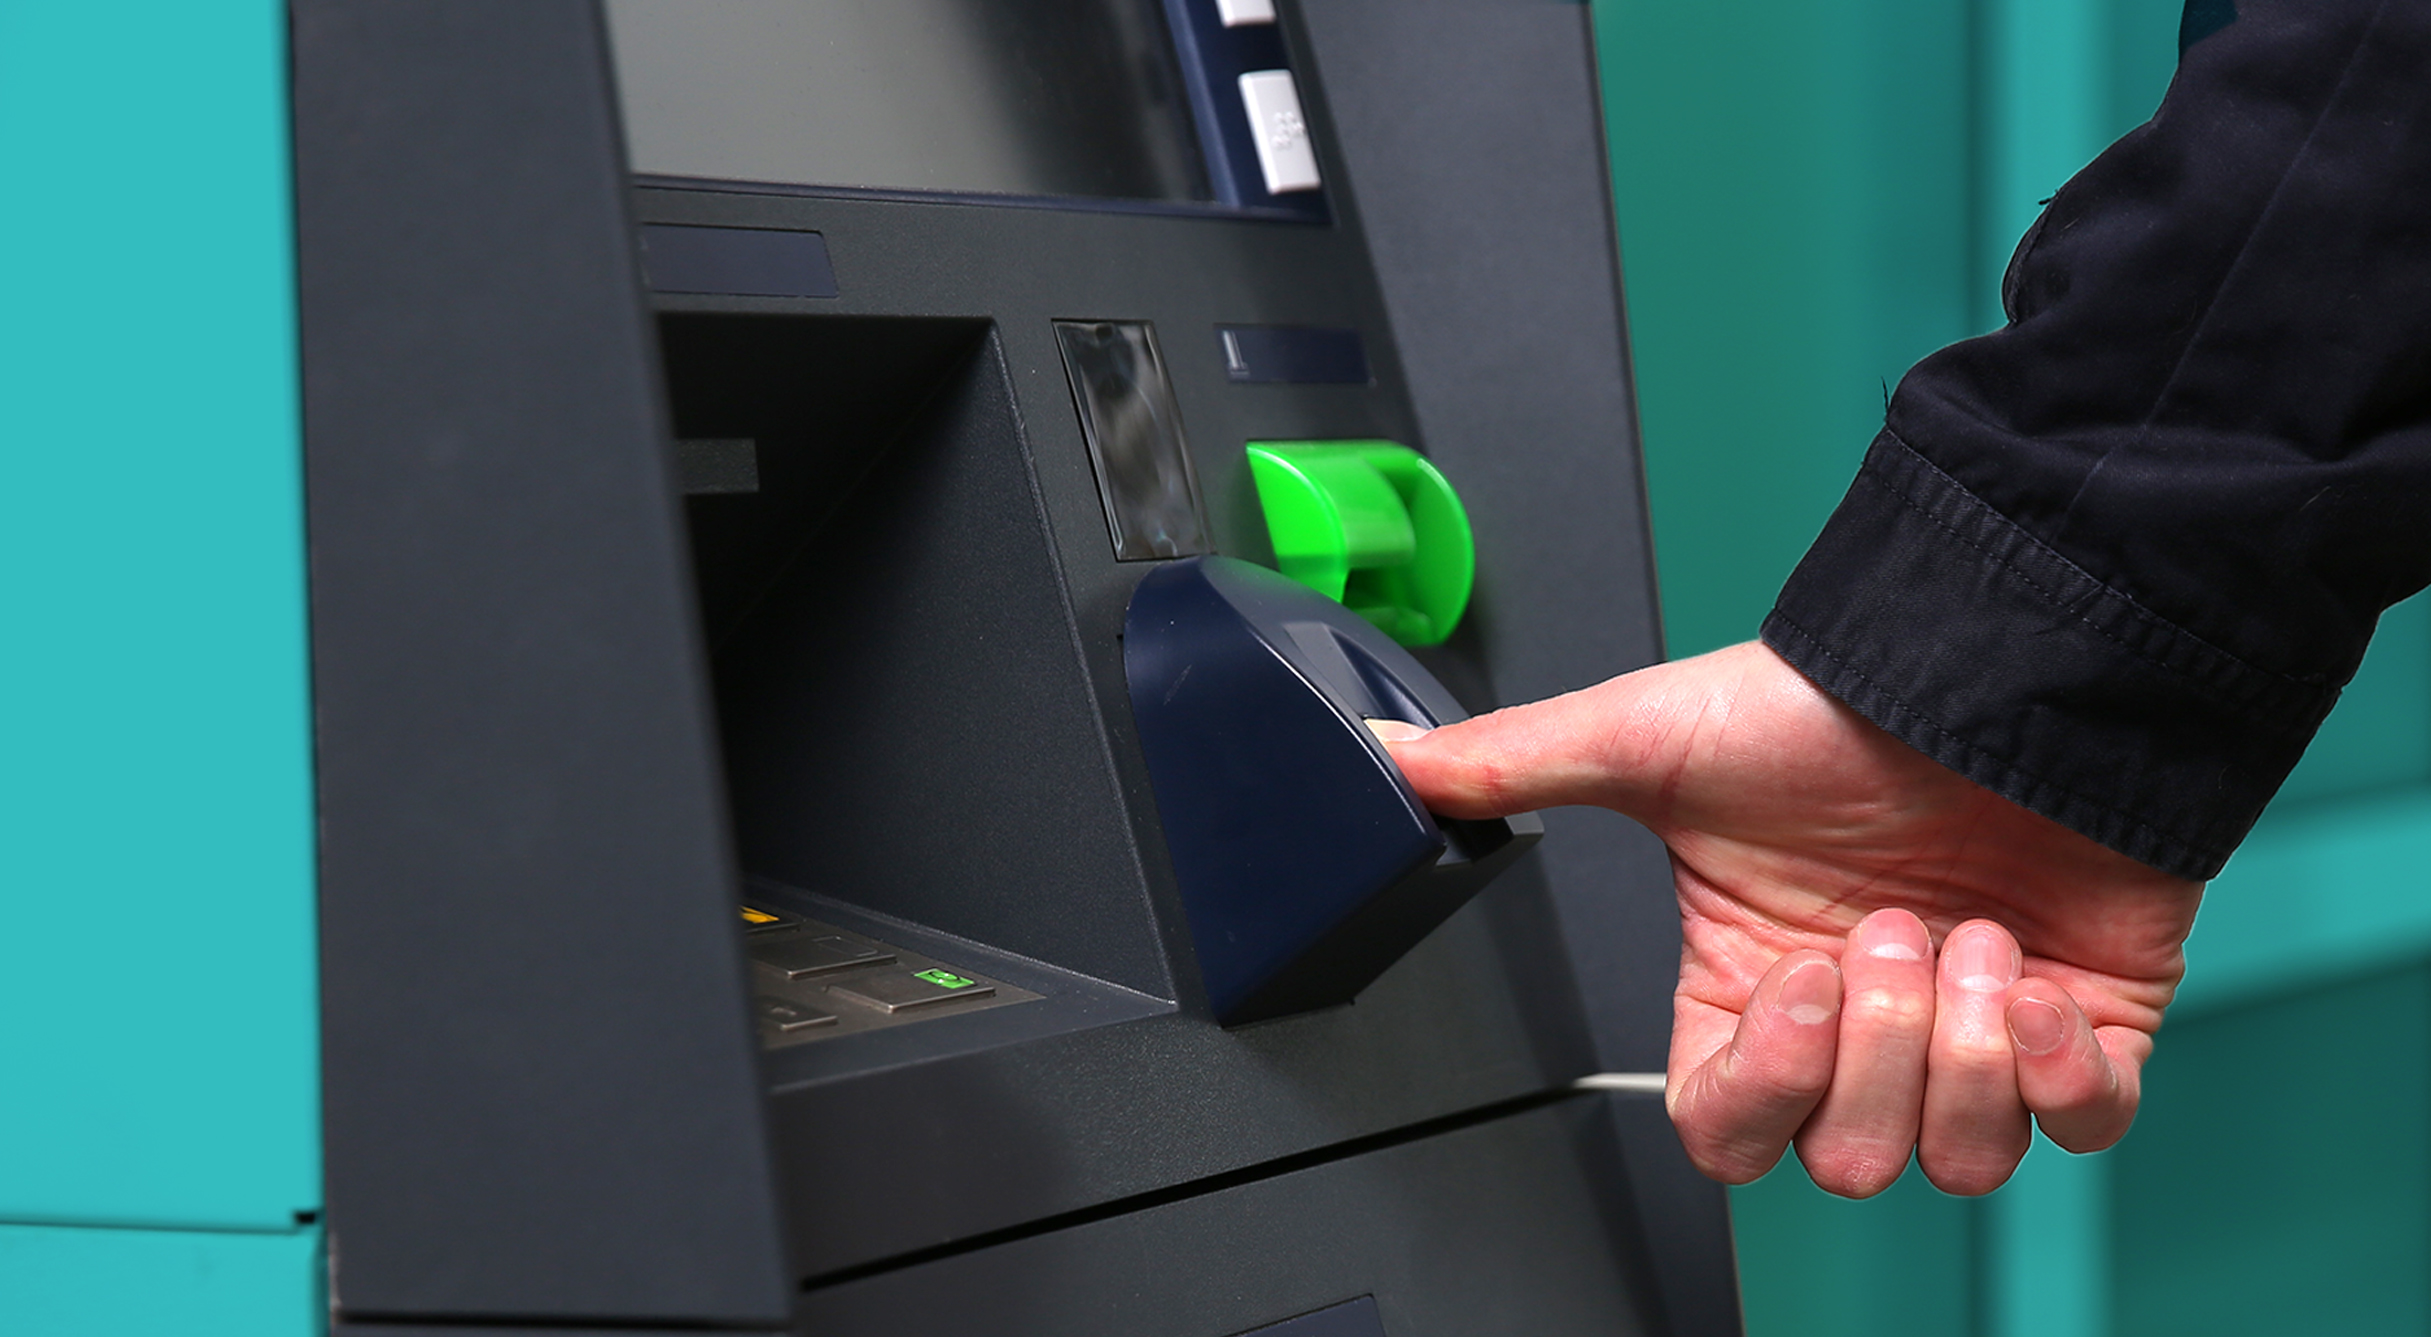 Latvian microfinance organization LAKS gives fingerprint loans through an ATM